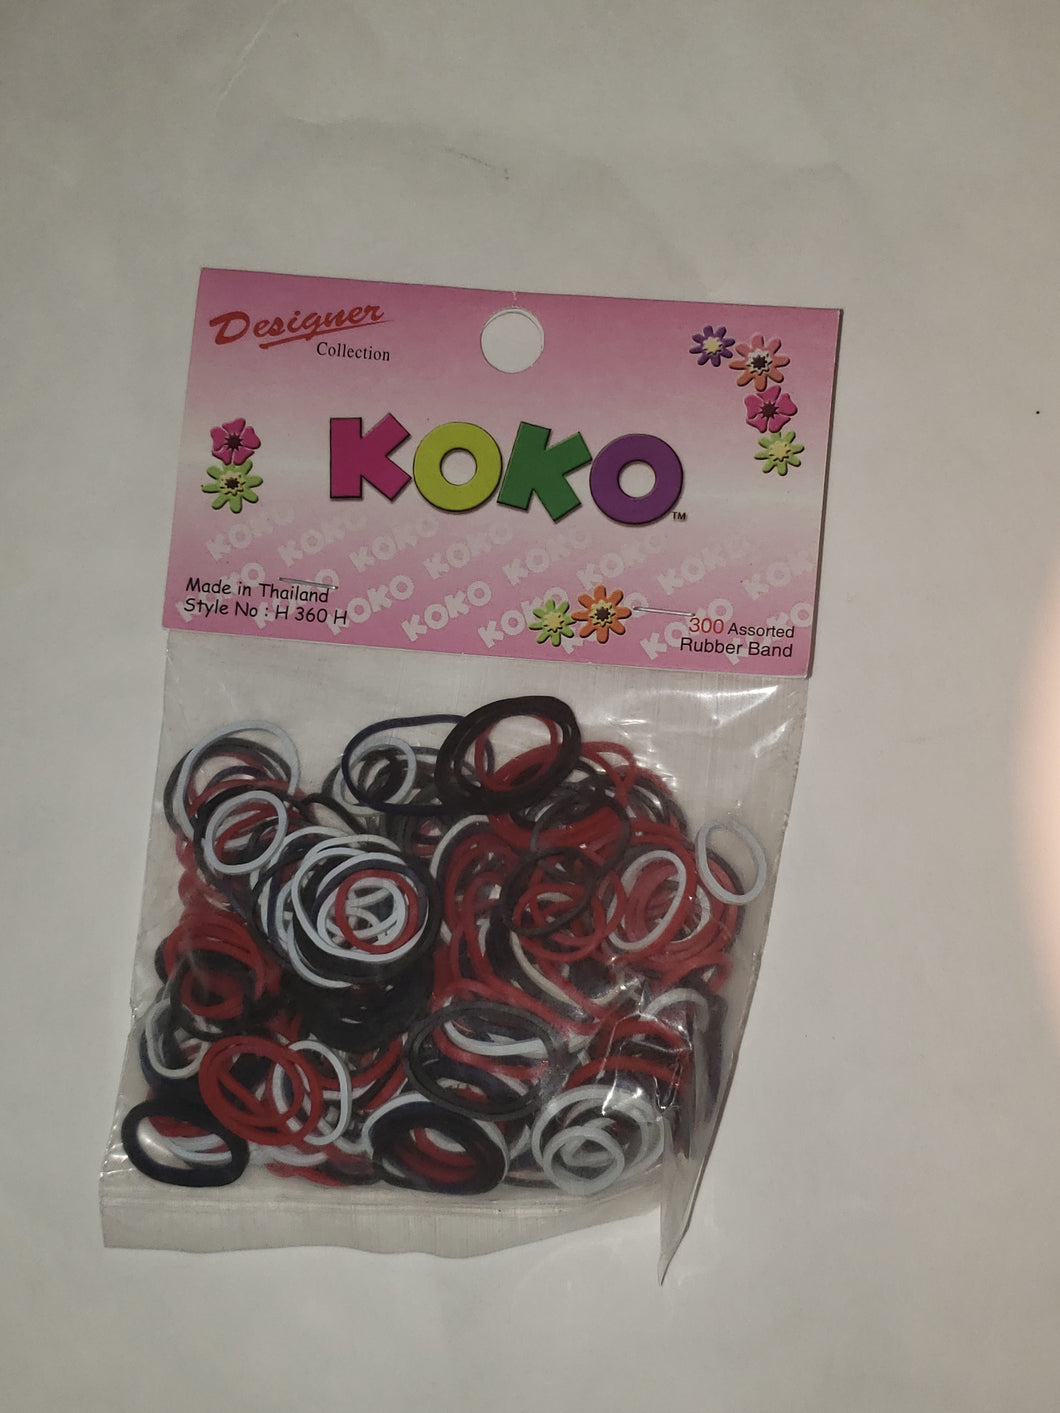 Koko 300 pcs Black, White & Red Rubber Bands